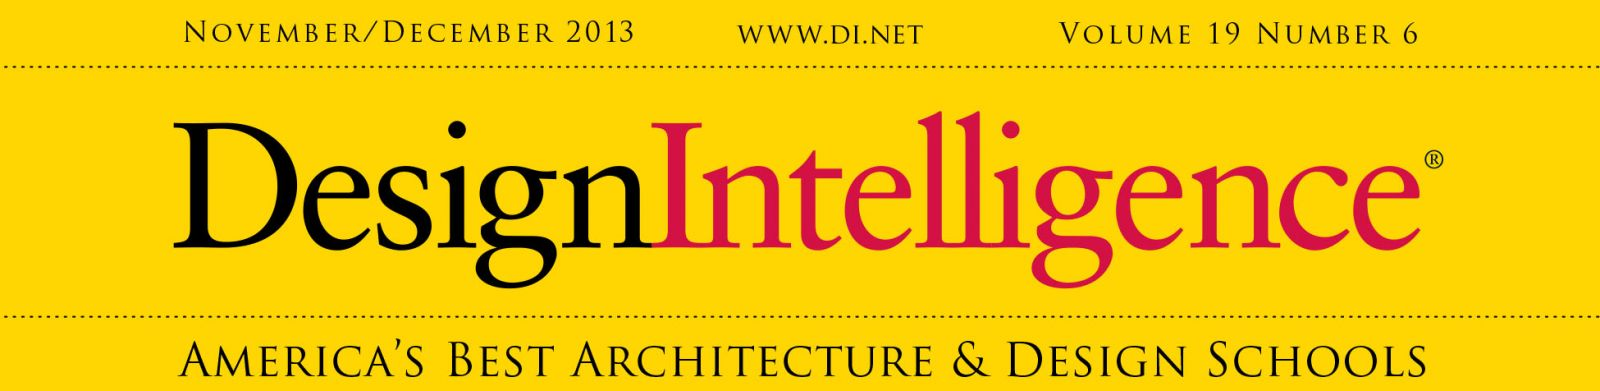 Design Intelligence, November/December 2013 Issue